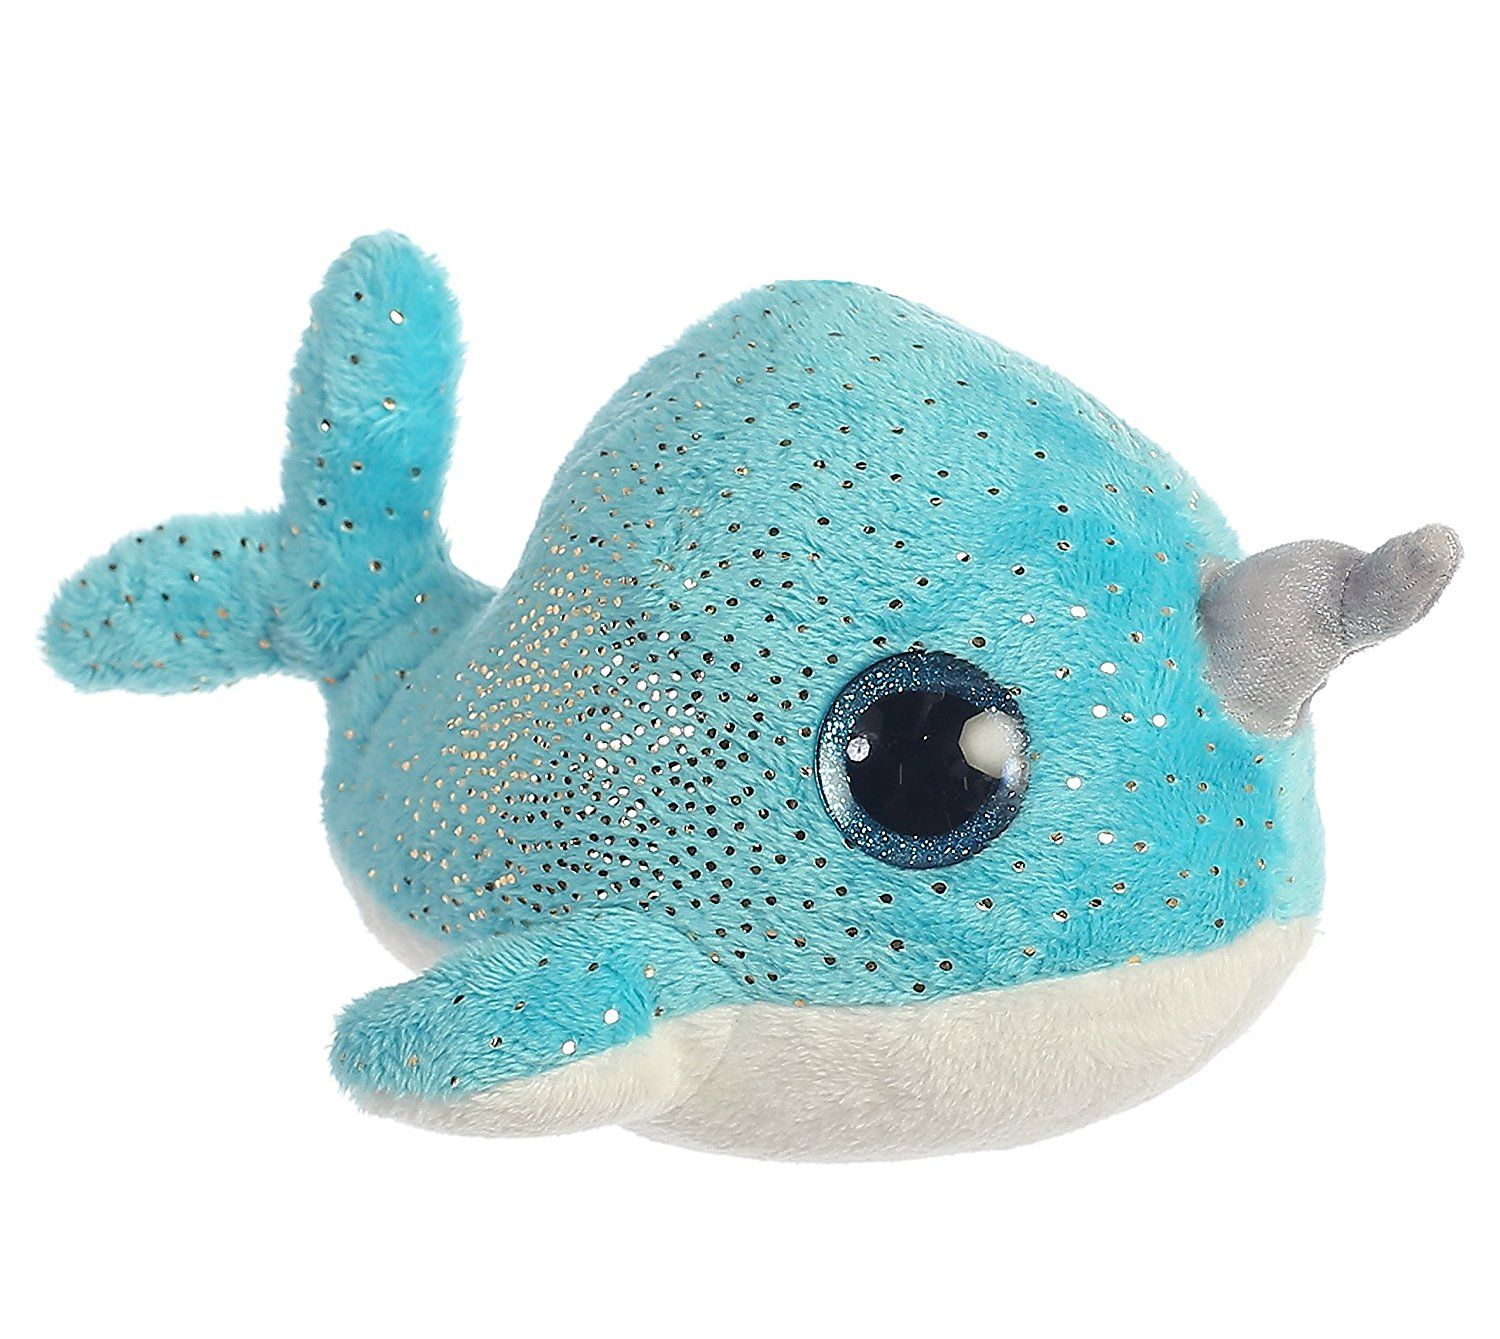 Narwhal! Cute stuffed animals, Narwhal plush, Ty stuffed